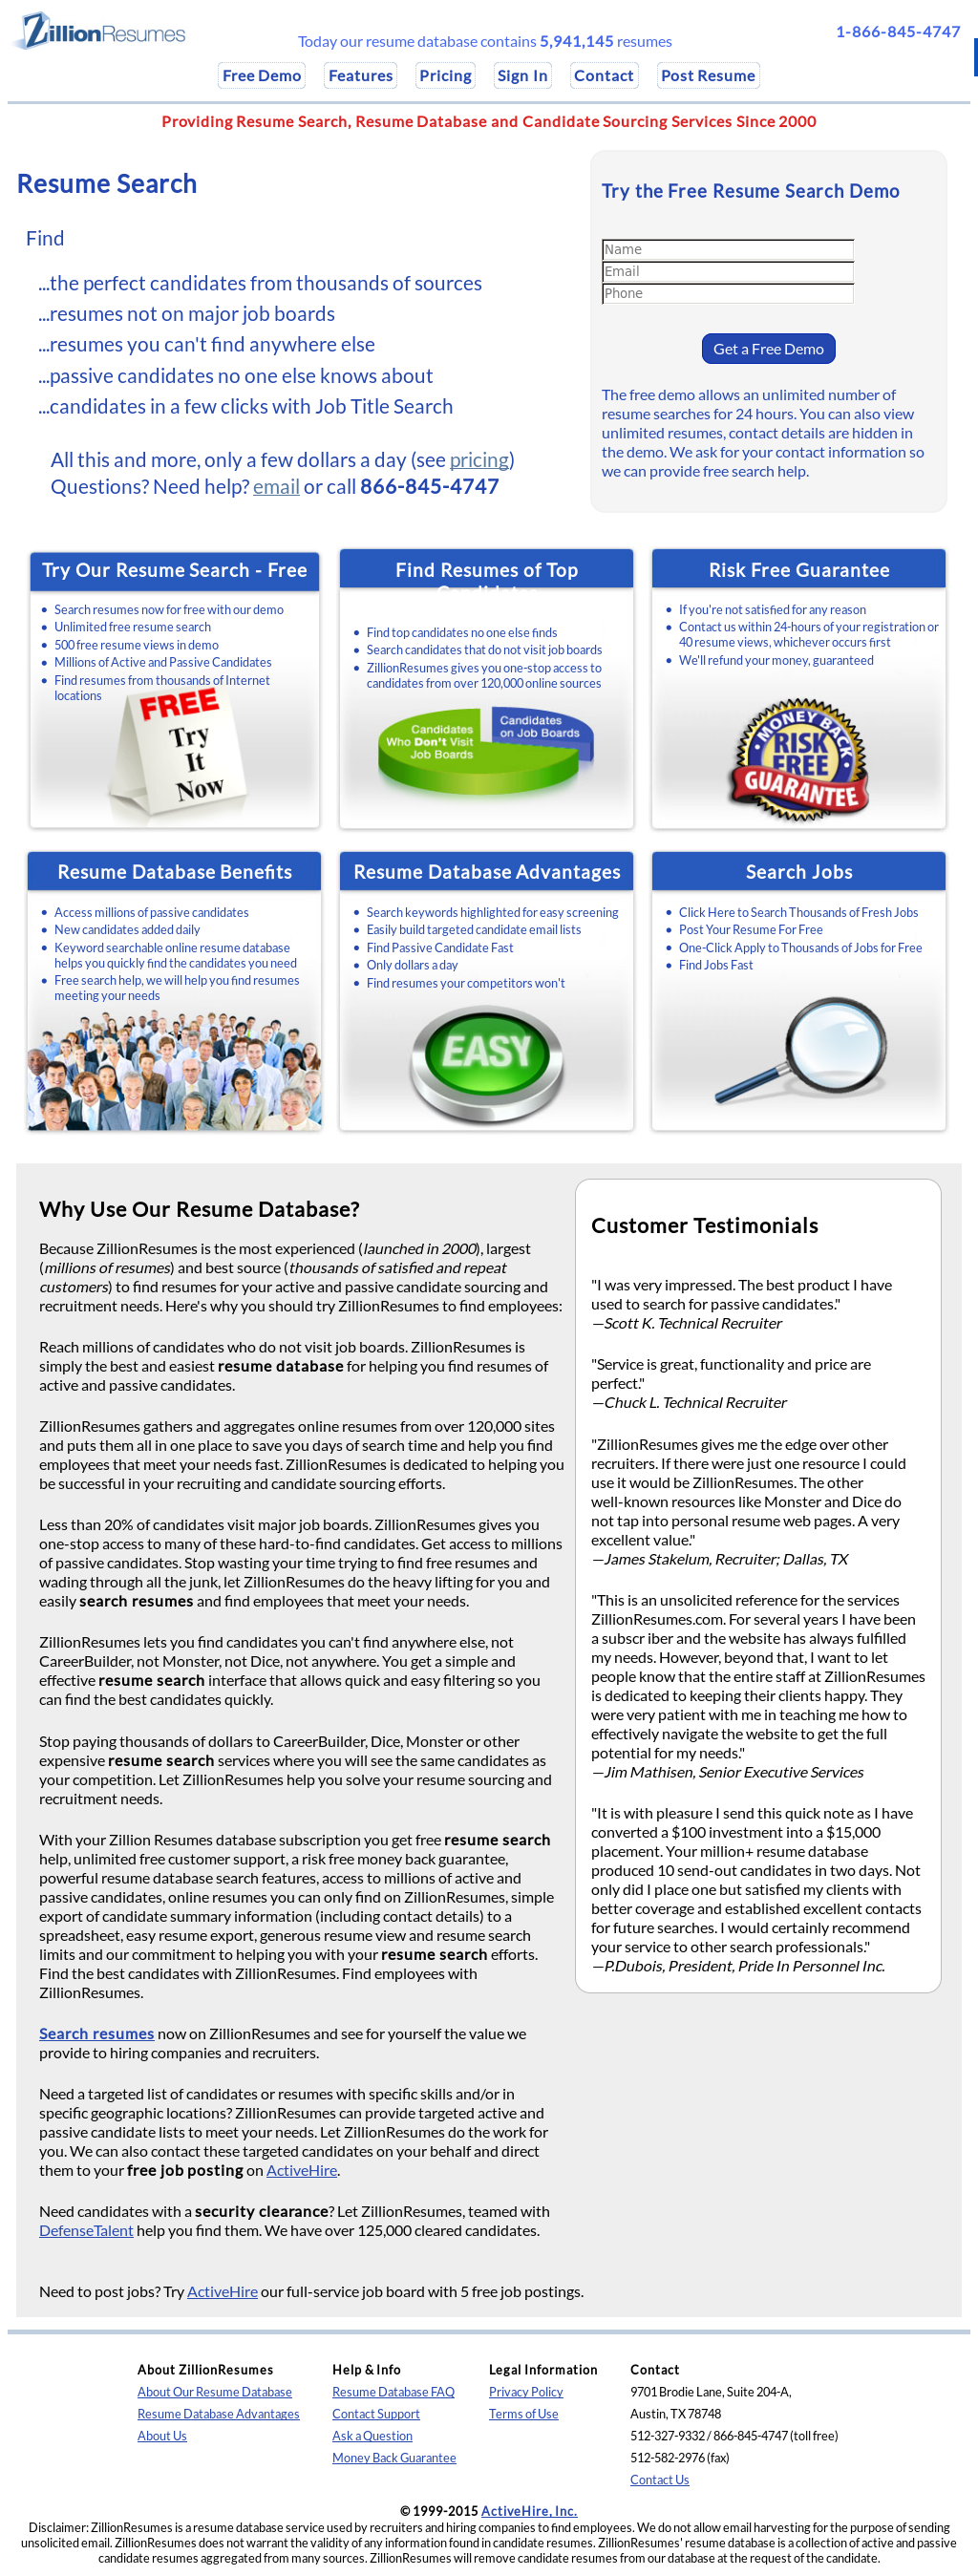 ZillionResumes Competitors, Revenue and Employees - Owler Company ...